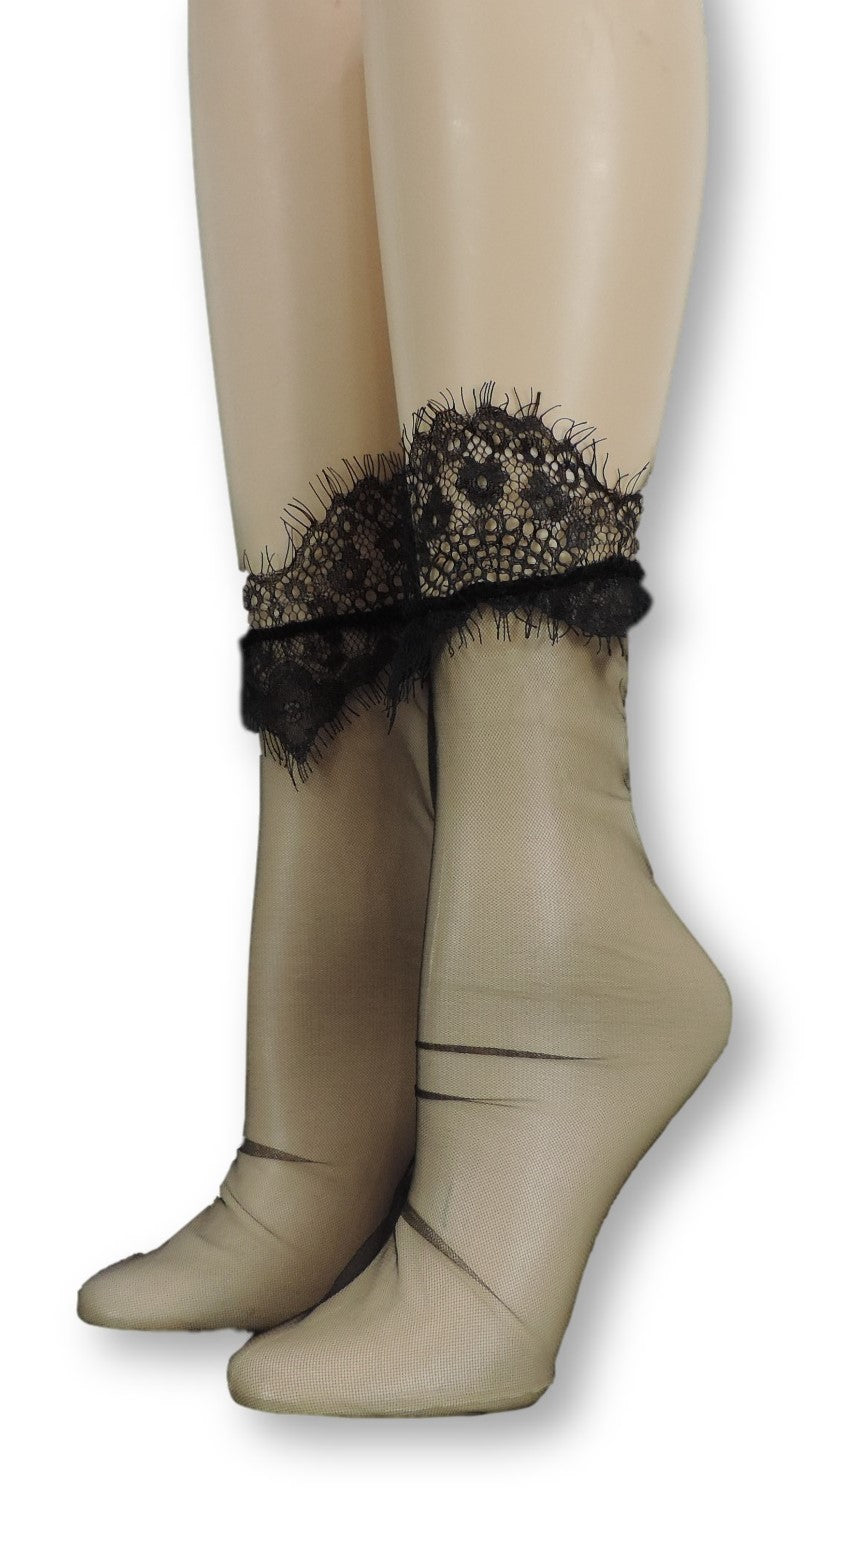 Black Net Tulle Socks - Global Trendz Fashion®